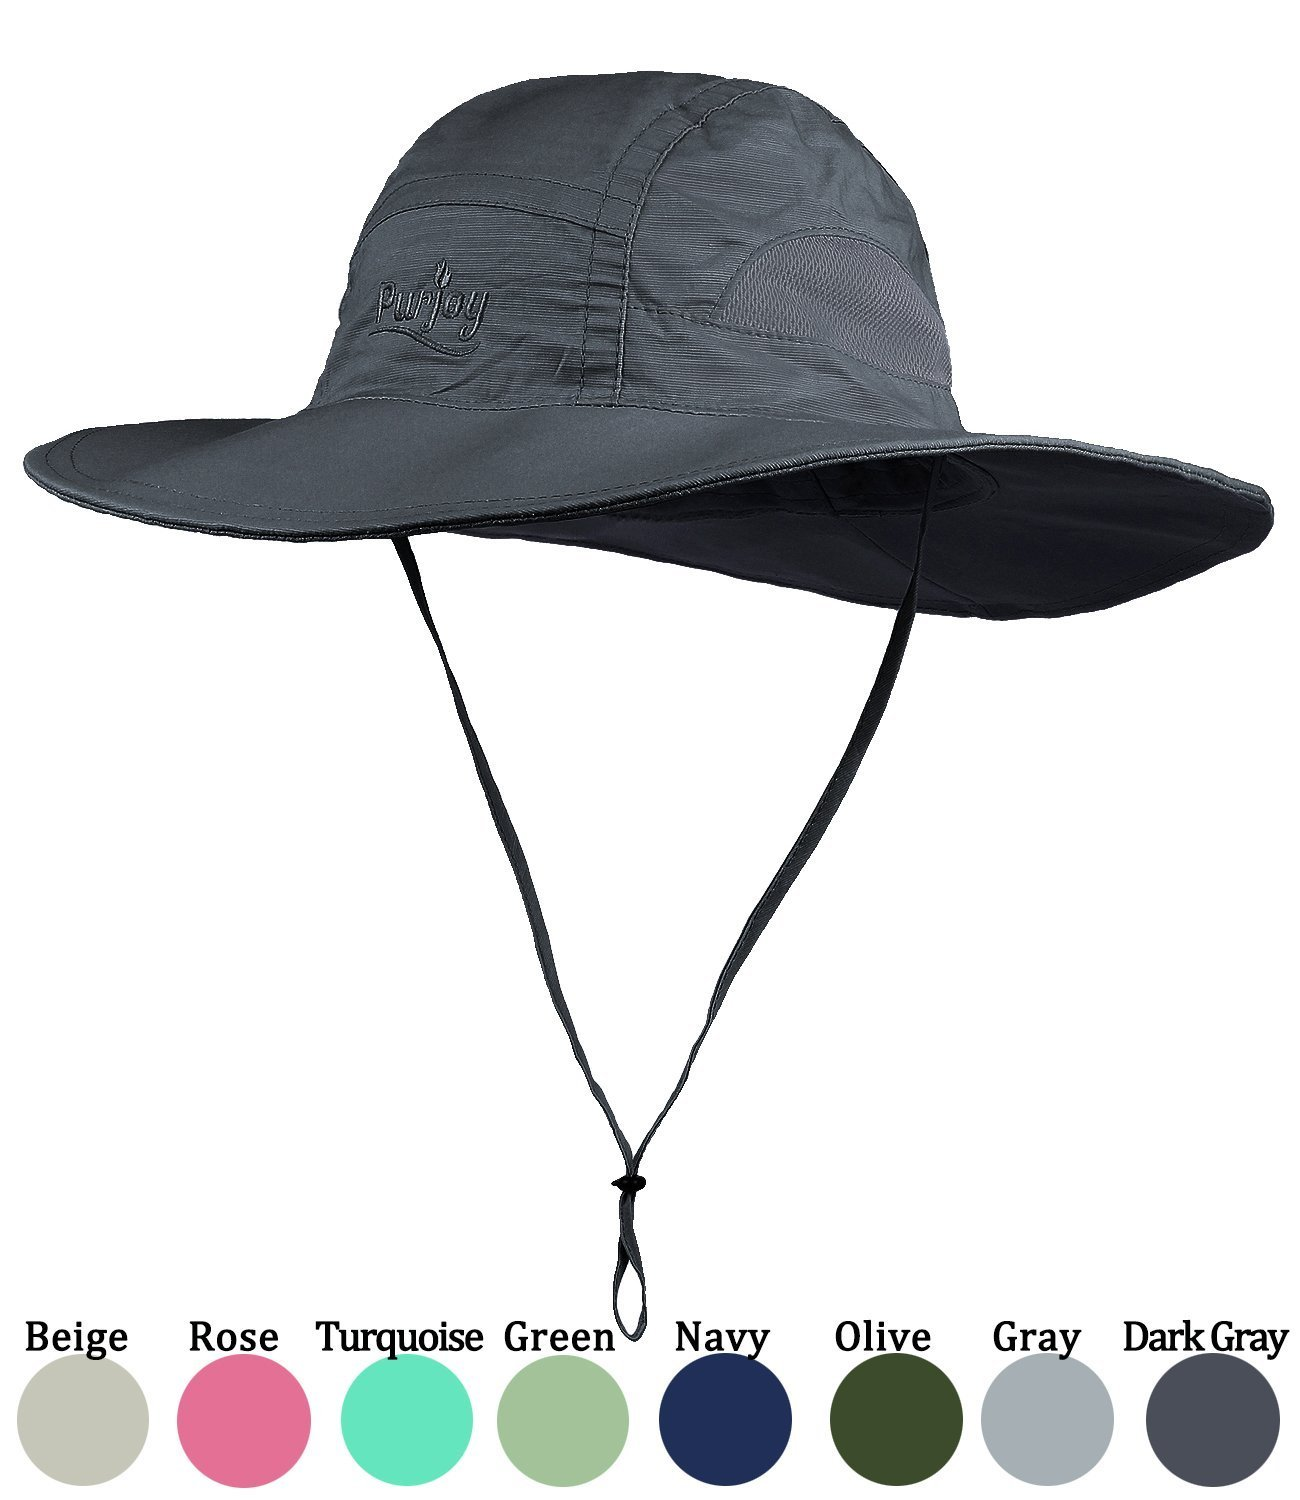 Purjoy Sun Hat for Men & Women,Wide Brim UPF 50+ UV Protection Beach Cap, Breathable Outdoor Boonie Hats with Adjustable Drawstring Design,Perfect for Hiking,Fishing,Camping,Boating,Safari (Dark Gray)